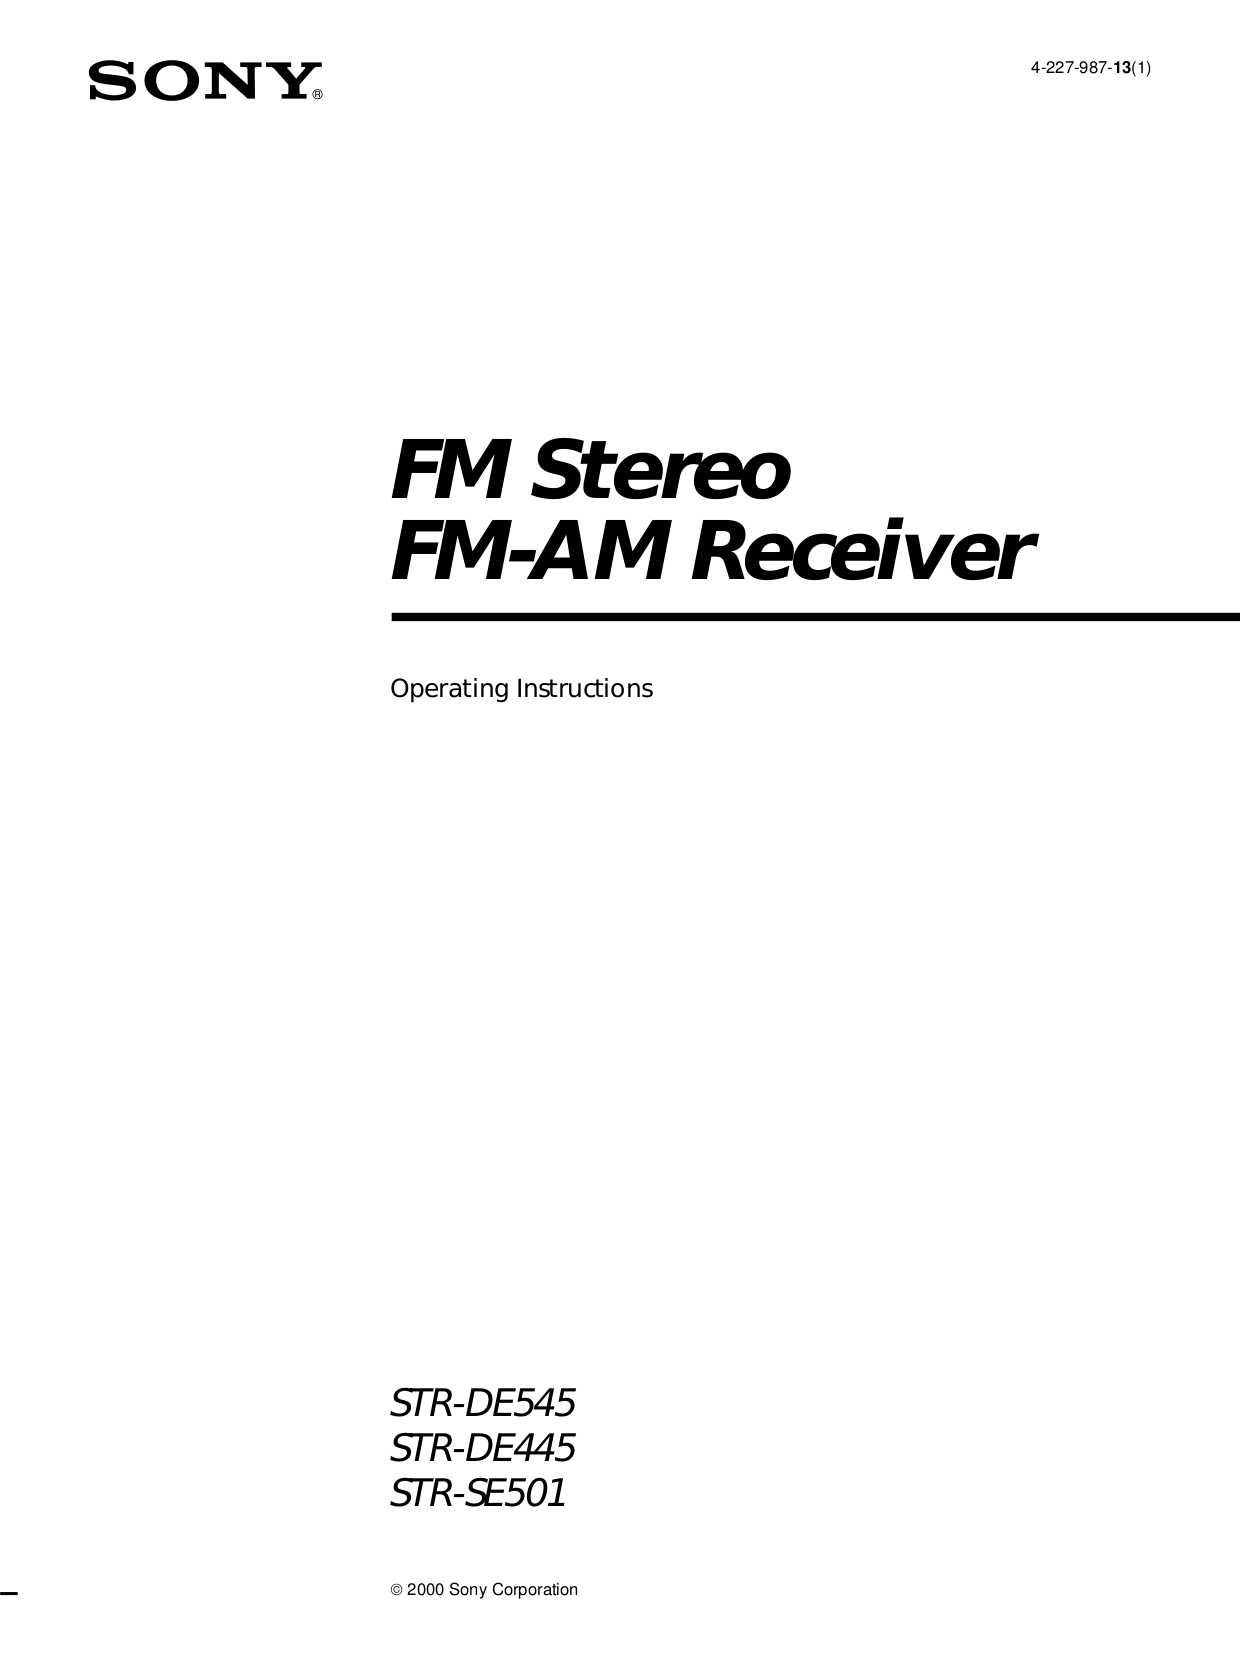 Download free pdf for Sony STR-DE445 Receiver manual